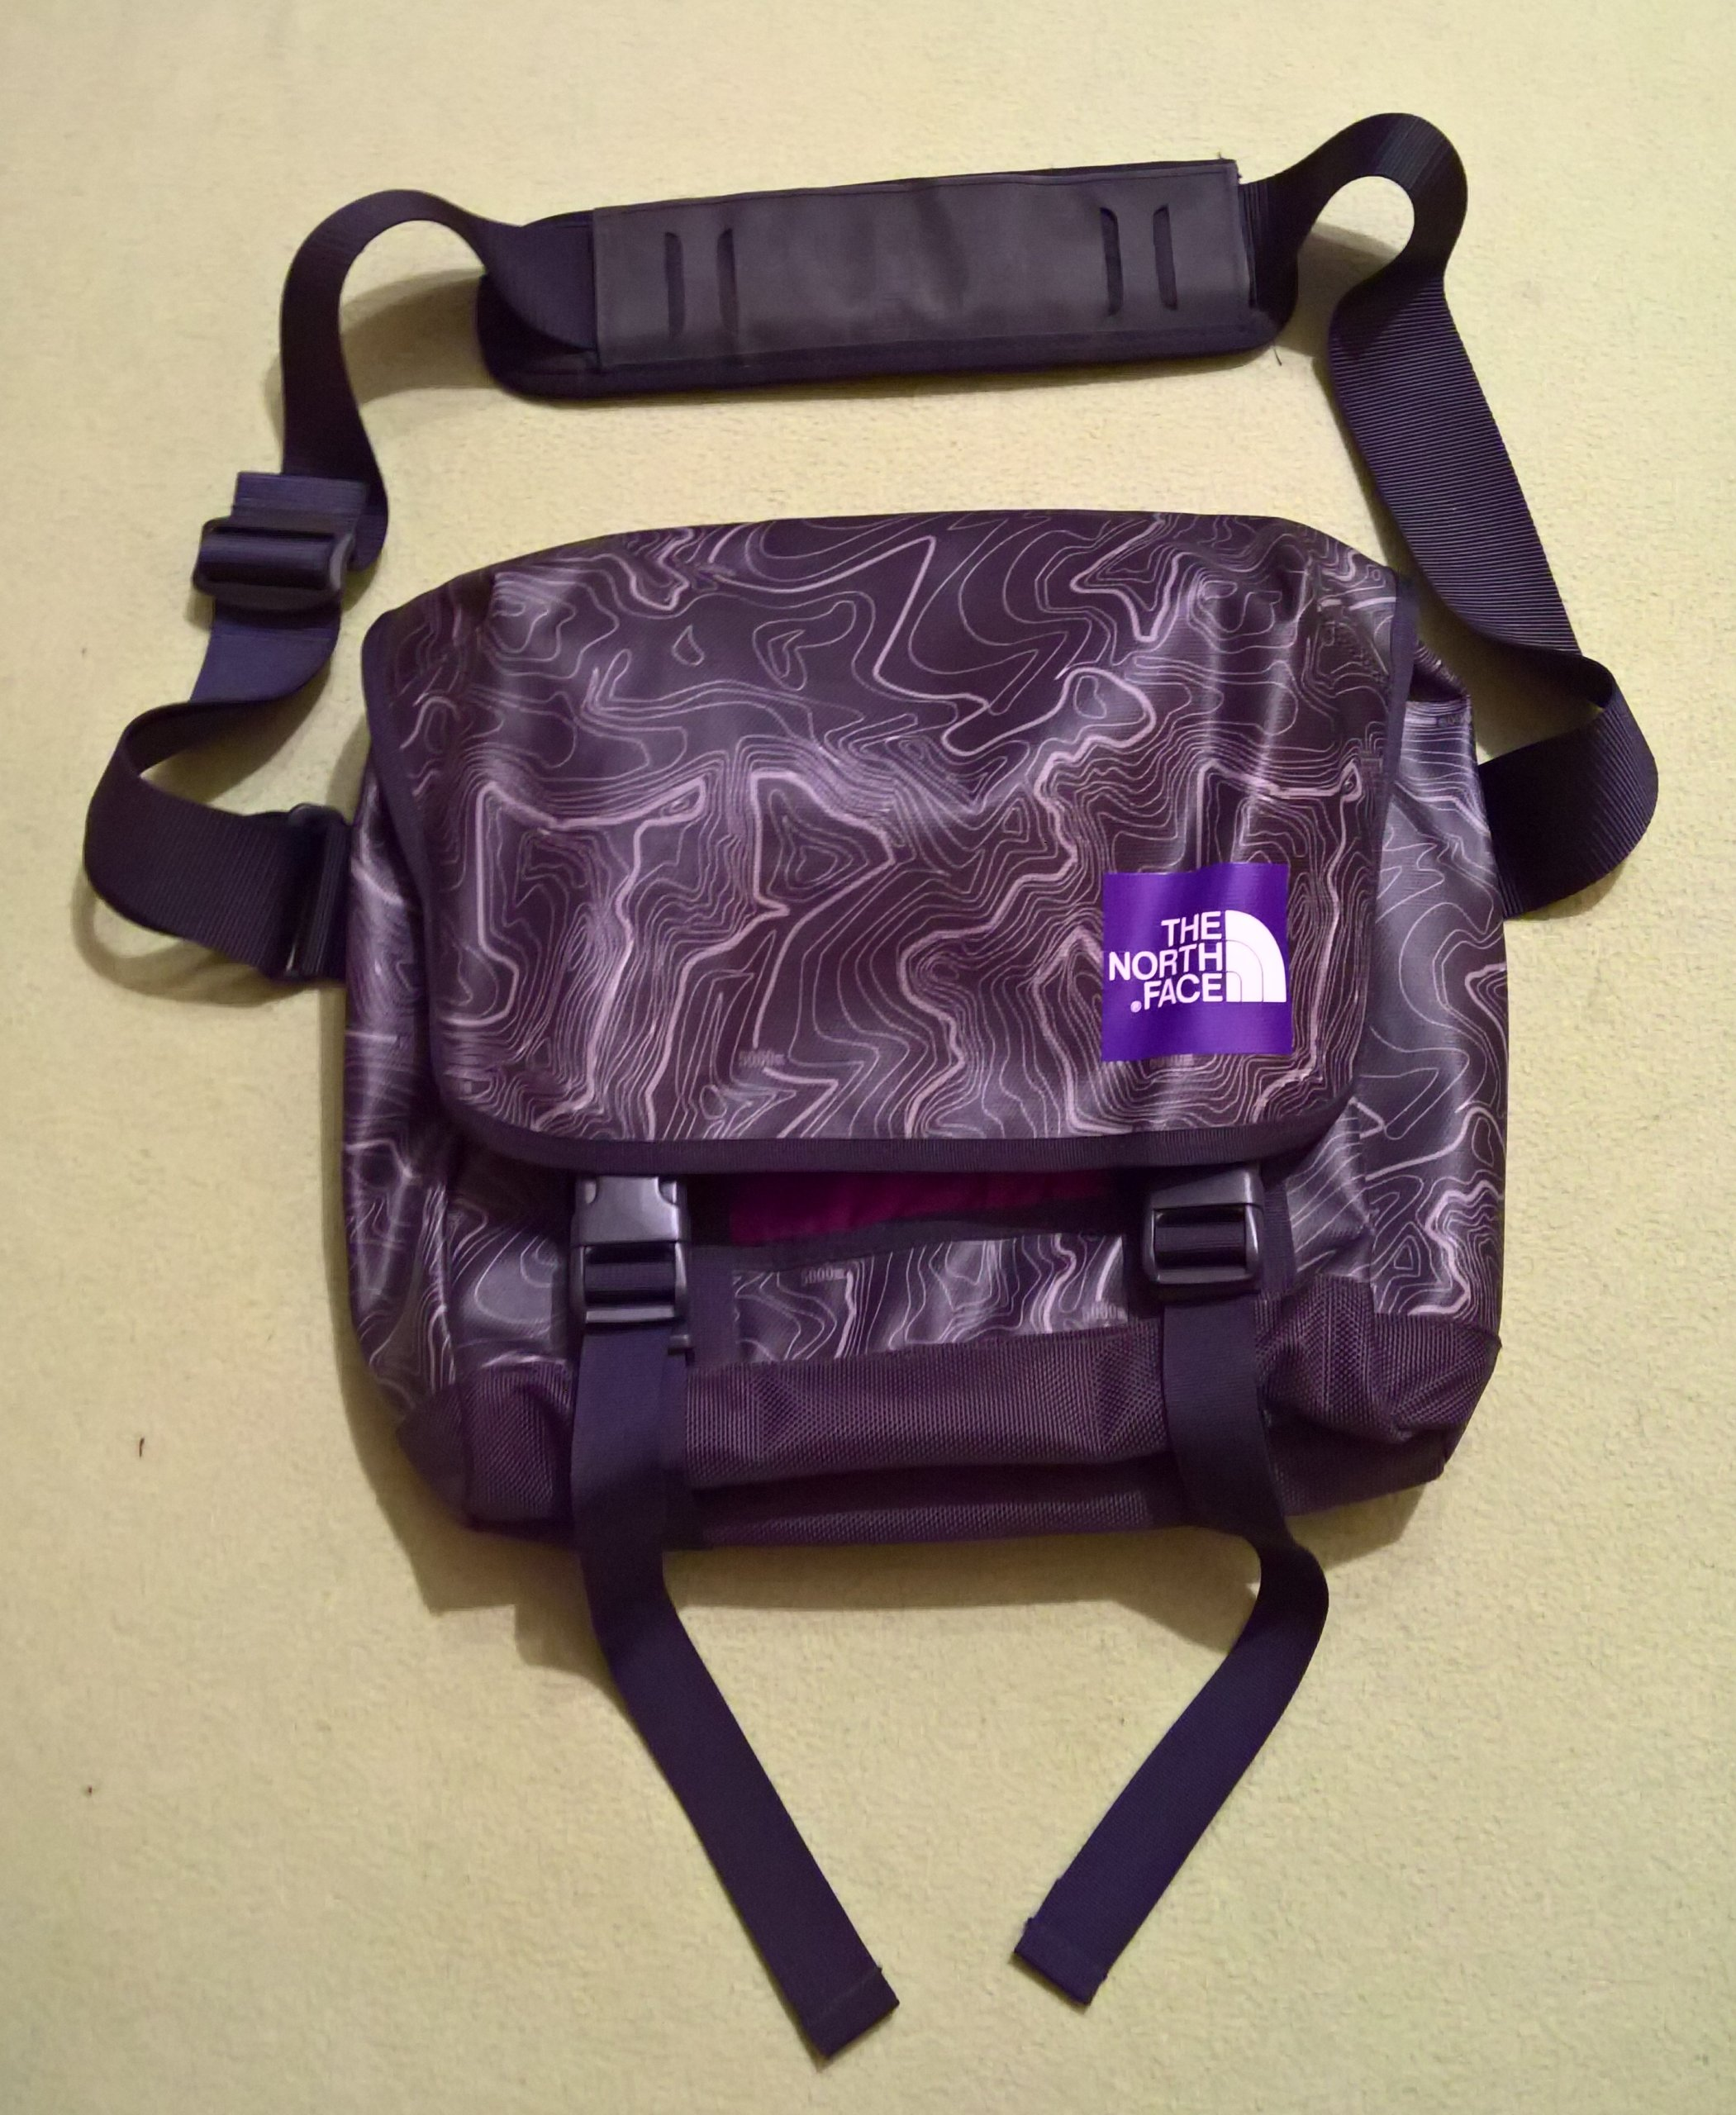 105fe5e5a2 THE NORTH FACE BASE CAMP MESSENGER 9i TORBA OKAZJA